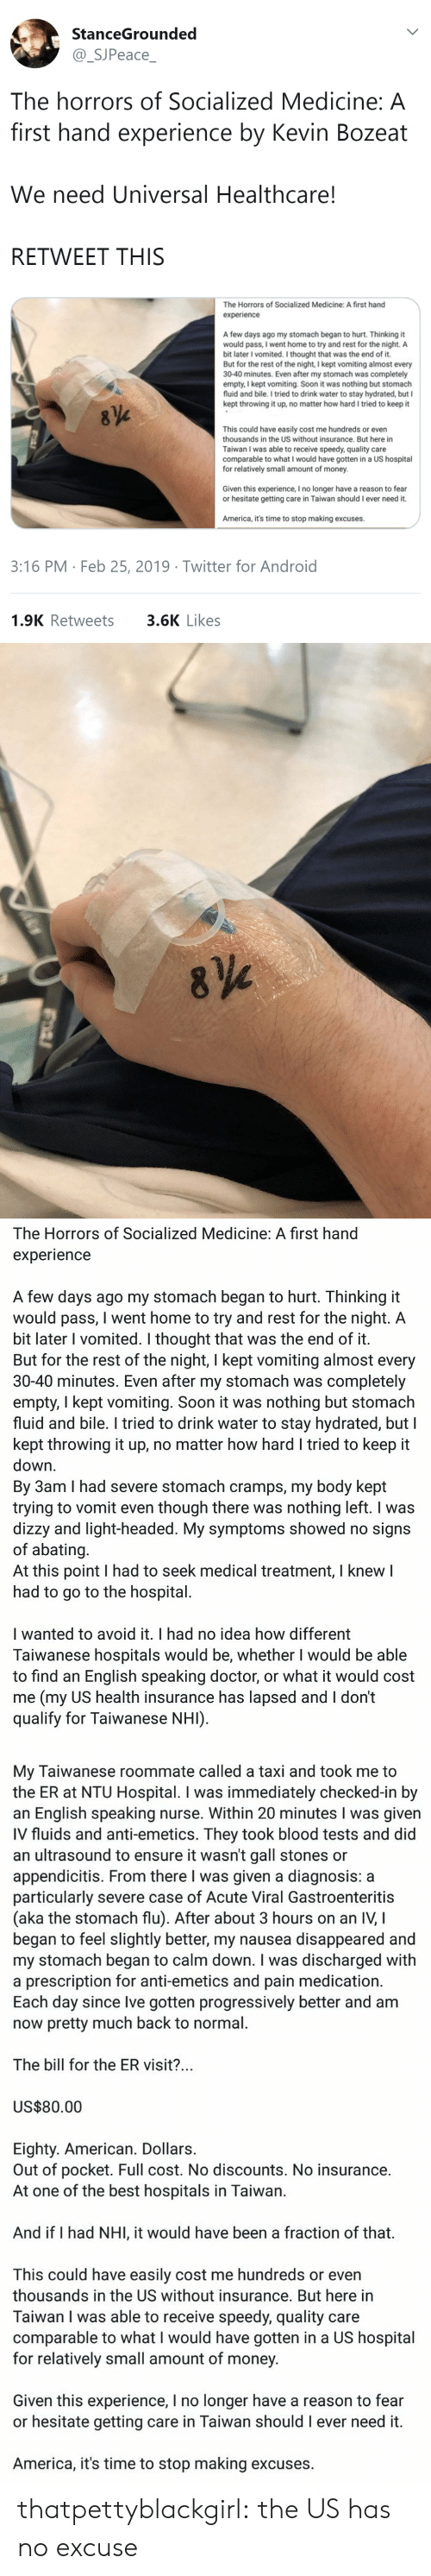 America, Android, and Doctor: StanceGrounded  SJPeace  The horrors of Socialized Medicine: A  first hand experience by Kevin Bozeat  We need Universal Healthcare!  RETWEET THIS  The Horrors of Socialized Medicine: A first hand  experience  A few days ago my stomach began to hurt. Thinking it  would pass, I went home to try and rest for the night. A  bit later I vomited. I thought that was the end of it.  But for the rest of the night, I kept vomiting almost every  30-40 minutes. Even after my stomach was completely  empty, I kept vomiting. Soon it was nothing but stomach  fluid and bile. I tried to drink water to stay hydrated, but I  kept throwing it up, no matter how hard I tried to keep it  This could have easily cost me hundreds or even  thousands in the US without insurance. But here in  Taiwan I was able to receive speedy, quality care  comparable to what I would have gotten in a US hospital  for relatively small amount of money  Given this experience, I no longer have a reason to fear  or hesitate getting care in Taiwan should I ever need it.  America, it's time to stop making excuses.  3:16 PM Feb 25, 2019 Twitter for Android  1.9K Retweets  3.6K Likes   The Horrors of Socialized Medicine: A first hand  experience  A few days ago my stomach began to hurt. Thinking it  would pass, I went home to try and rest for the night. A  bit later I vomited. I thought that was the end of it  But for the rest of the night, l kept vomiting almost every  30-40 minutes. Even after my stomach was completely  empty, I kept vomiting. Soon it was nothing but stomach  fluid and bile. I tried to drink water to stay hydrated, but I  kept throwing it up, no matter how hard I tried to keep it  down  By 3am I had severe stomach cramps, my body kept  trying to vomit even though there was nothing left. I was  dizzy and light-headed. My symptoms showed no signs  of abating  At this point I had to seek medical treatment, I knew  had to go to the hospital  I wanted to avoid it. I had no id